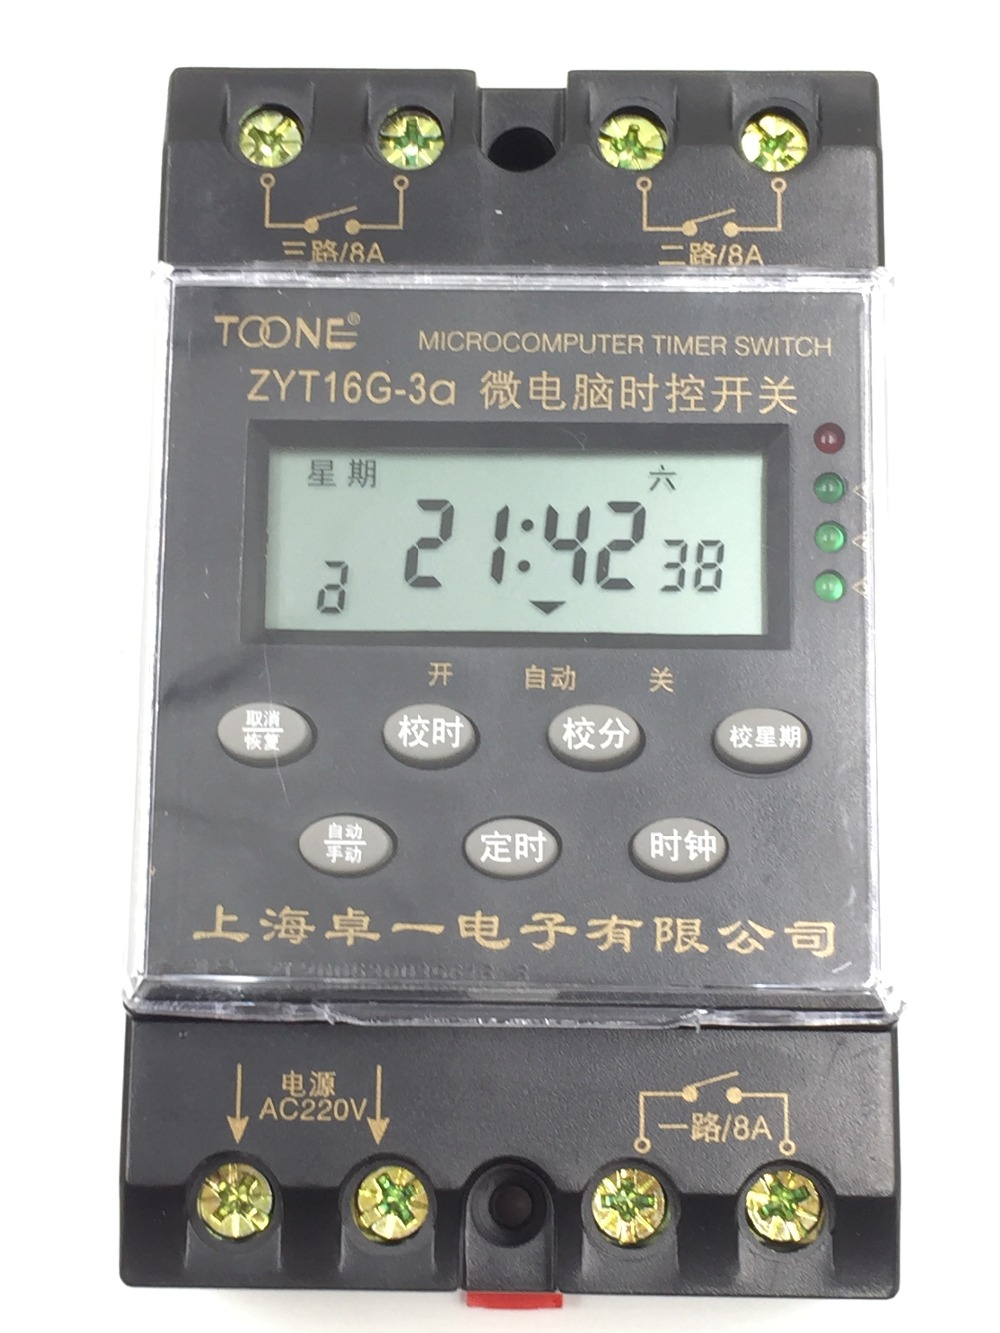 Zhuo one three road multi loop control switch lamp timer timer switch KG316T ZYT16G-3a [zob] hagrid eh771 timer switch 1 channel cycle timer switch control switch import import